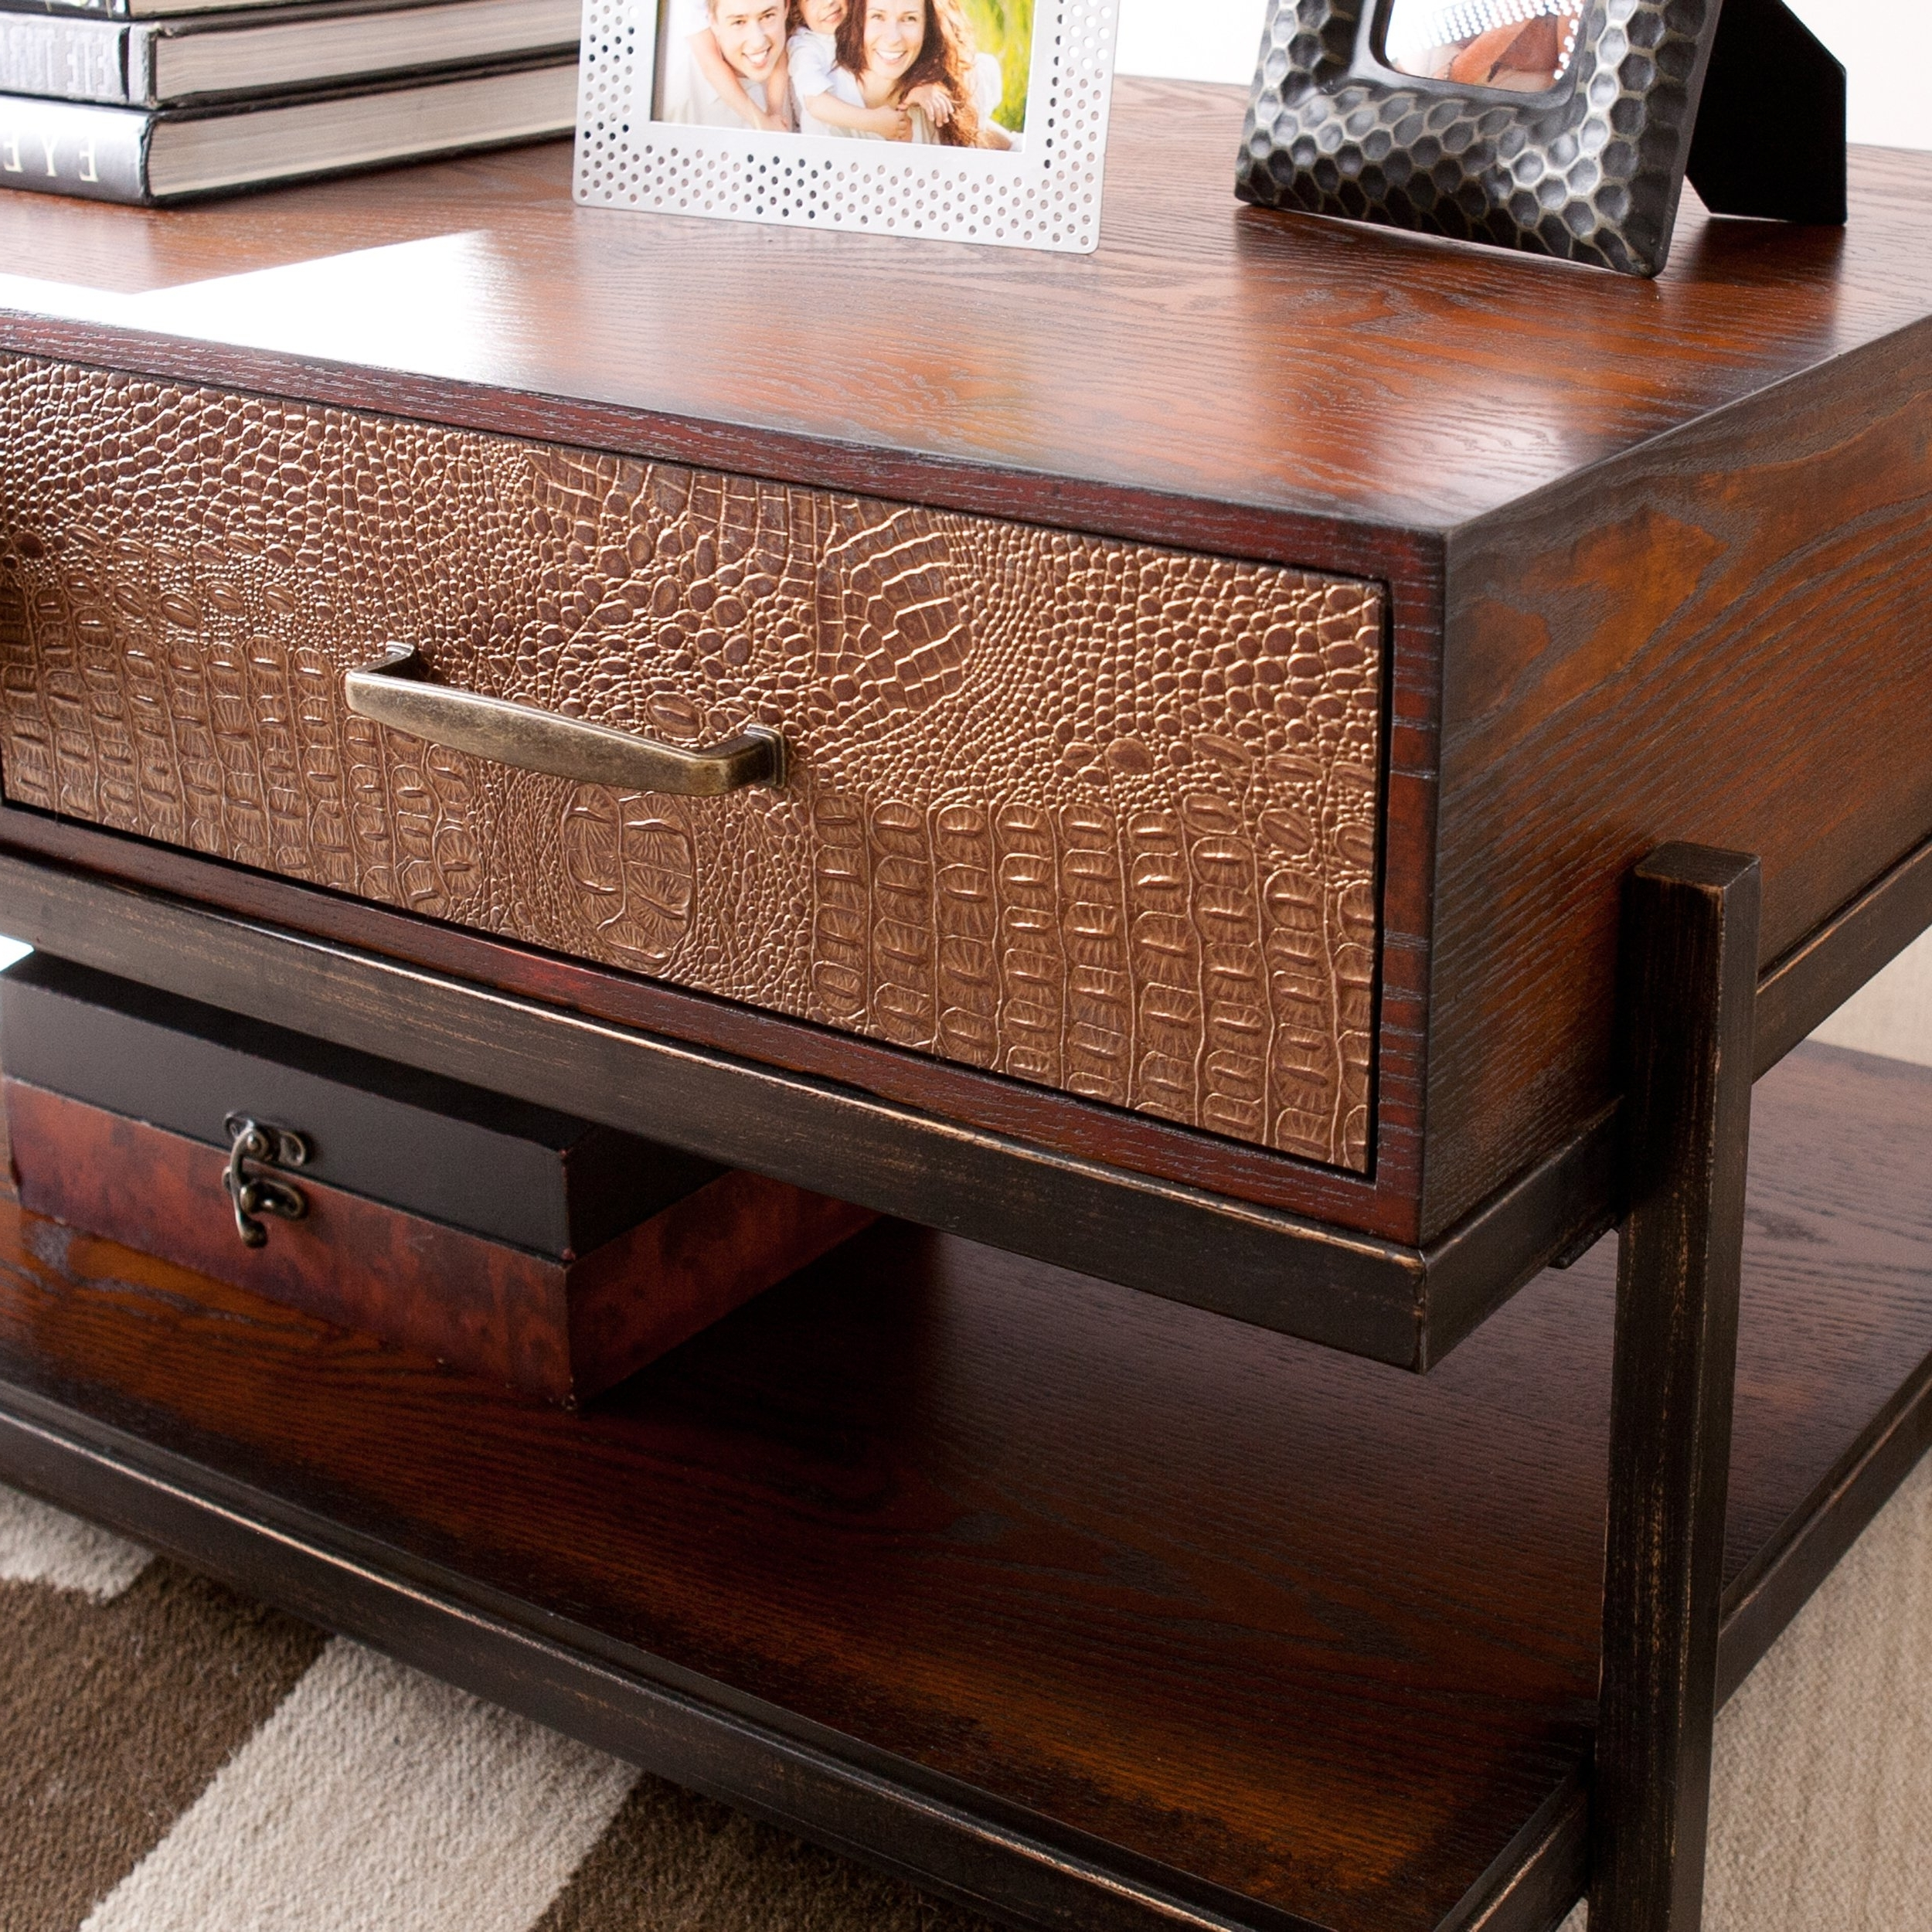 Shop Harper Blvd Palmer Cocktail/ Coffee Table – Free Shipping Today Regarding Famous Palmer Storage Cocktail Tables (View 6 of 20)